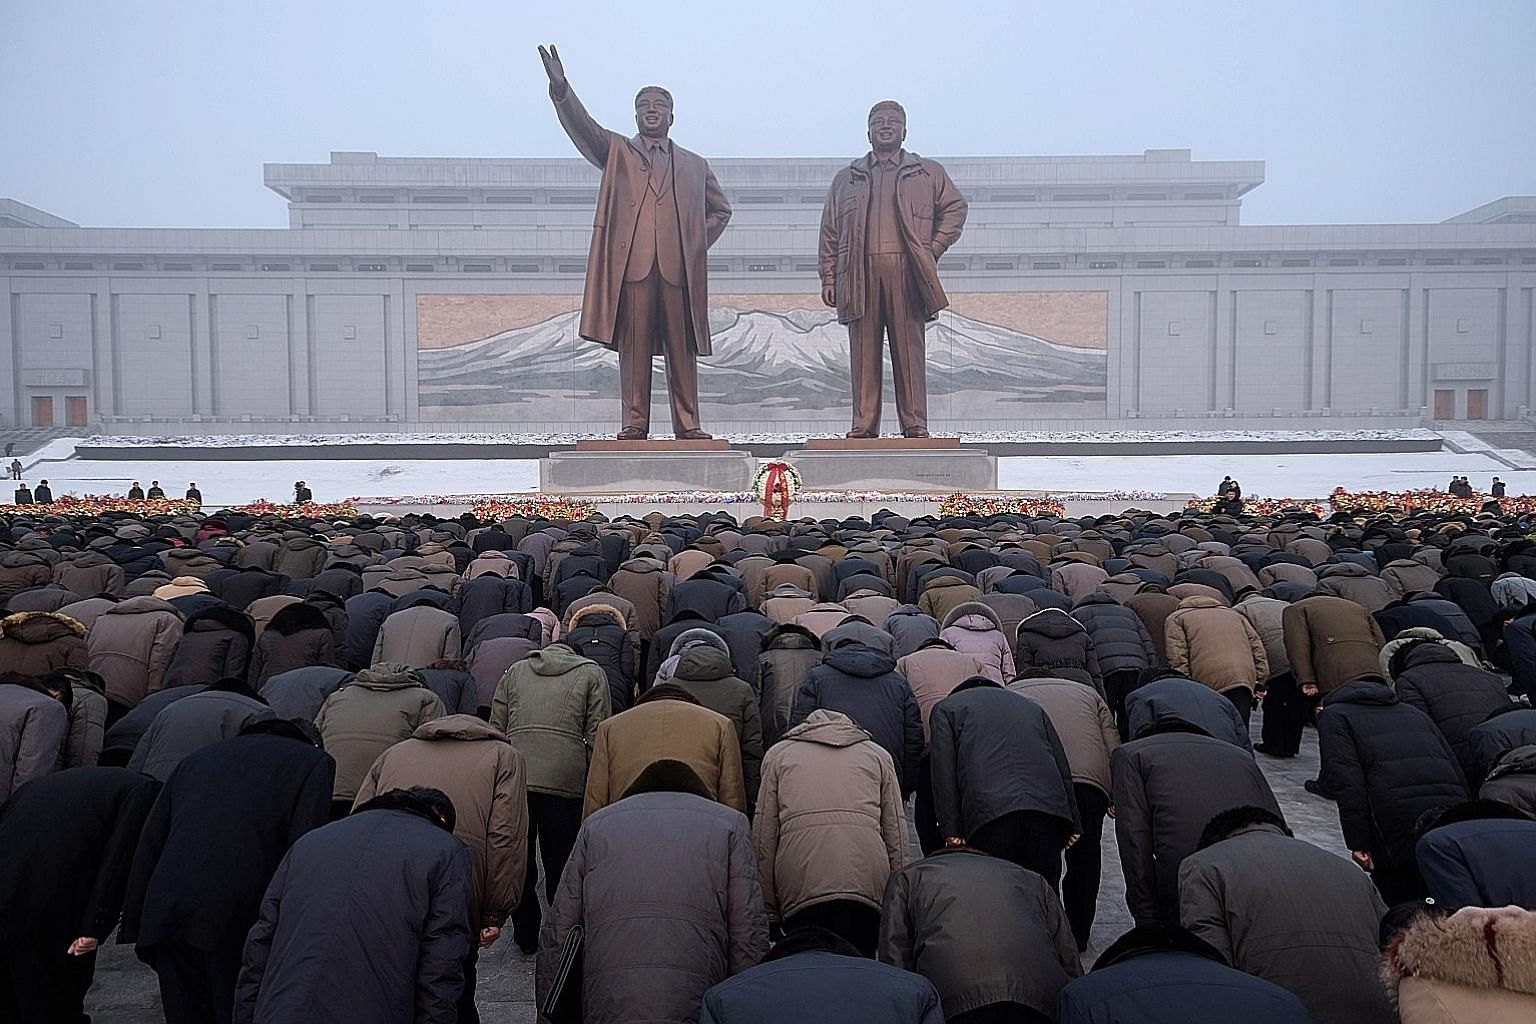 Pyongyang residents bowing before the statues of late North Korean leaders Kim Il Sung (far left) and Kim Jong Il during National Memorial Day on Mansu Hill in Pyongyang yesterday. North Korea marked the seventh anniversary of the death of Mr Kim Jon